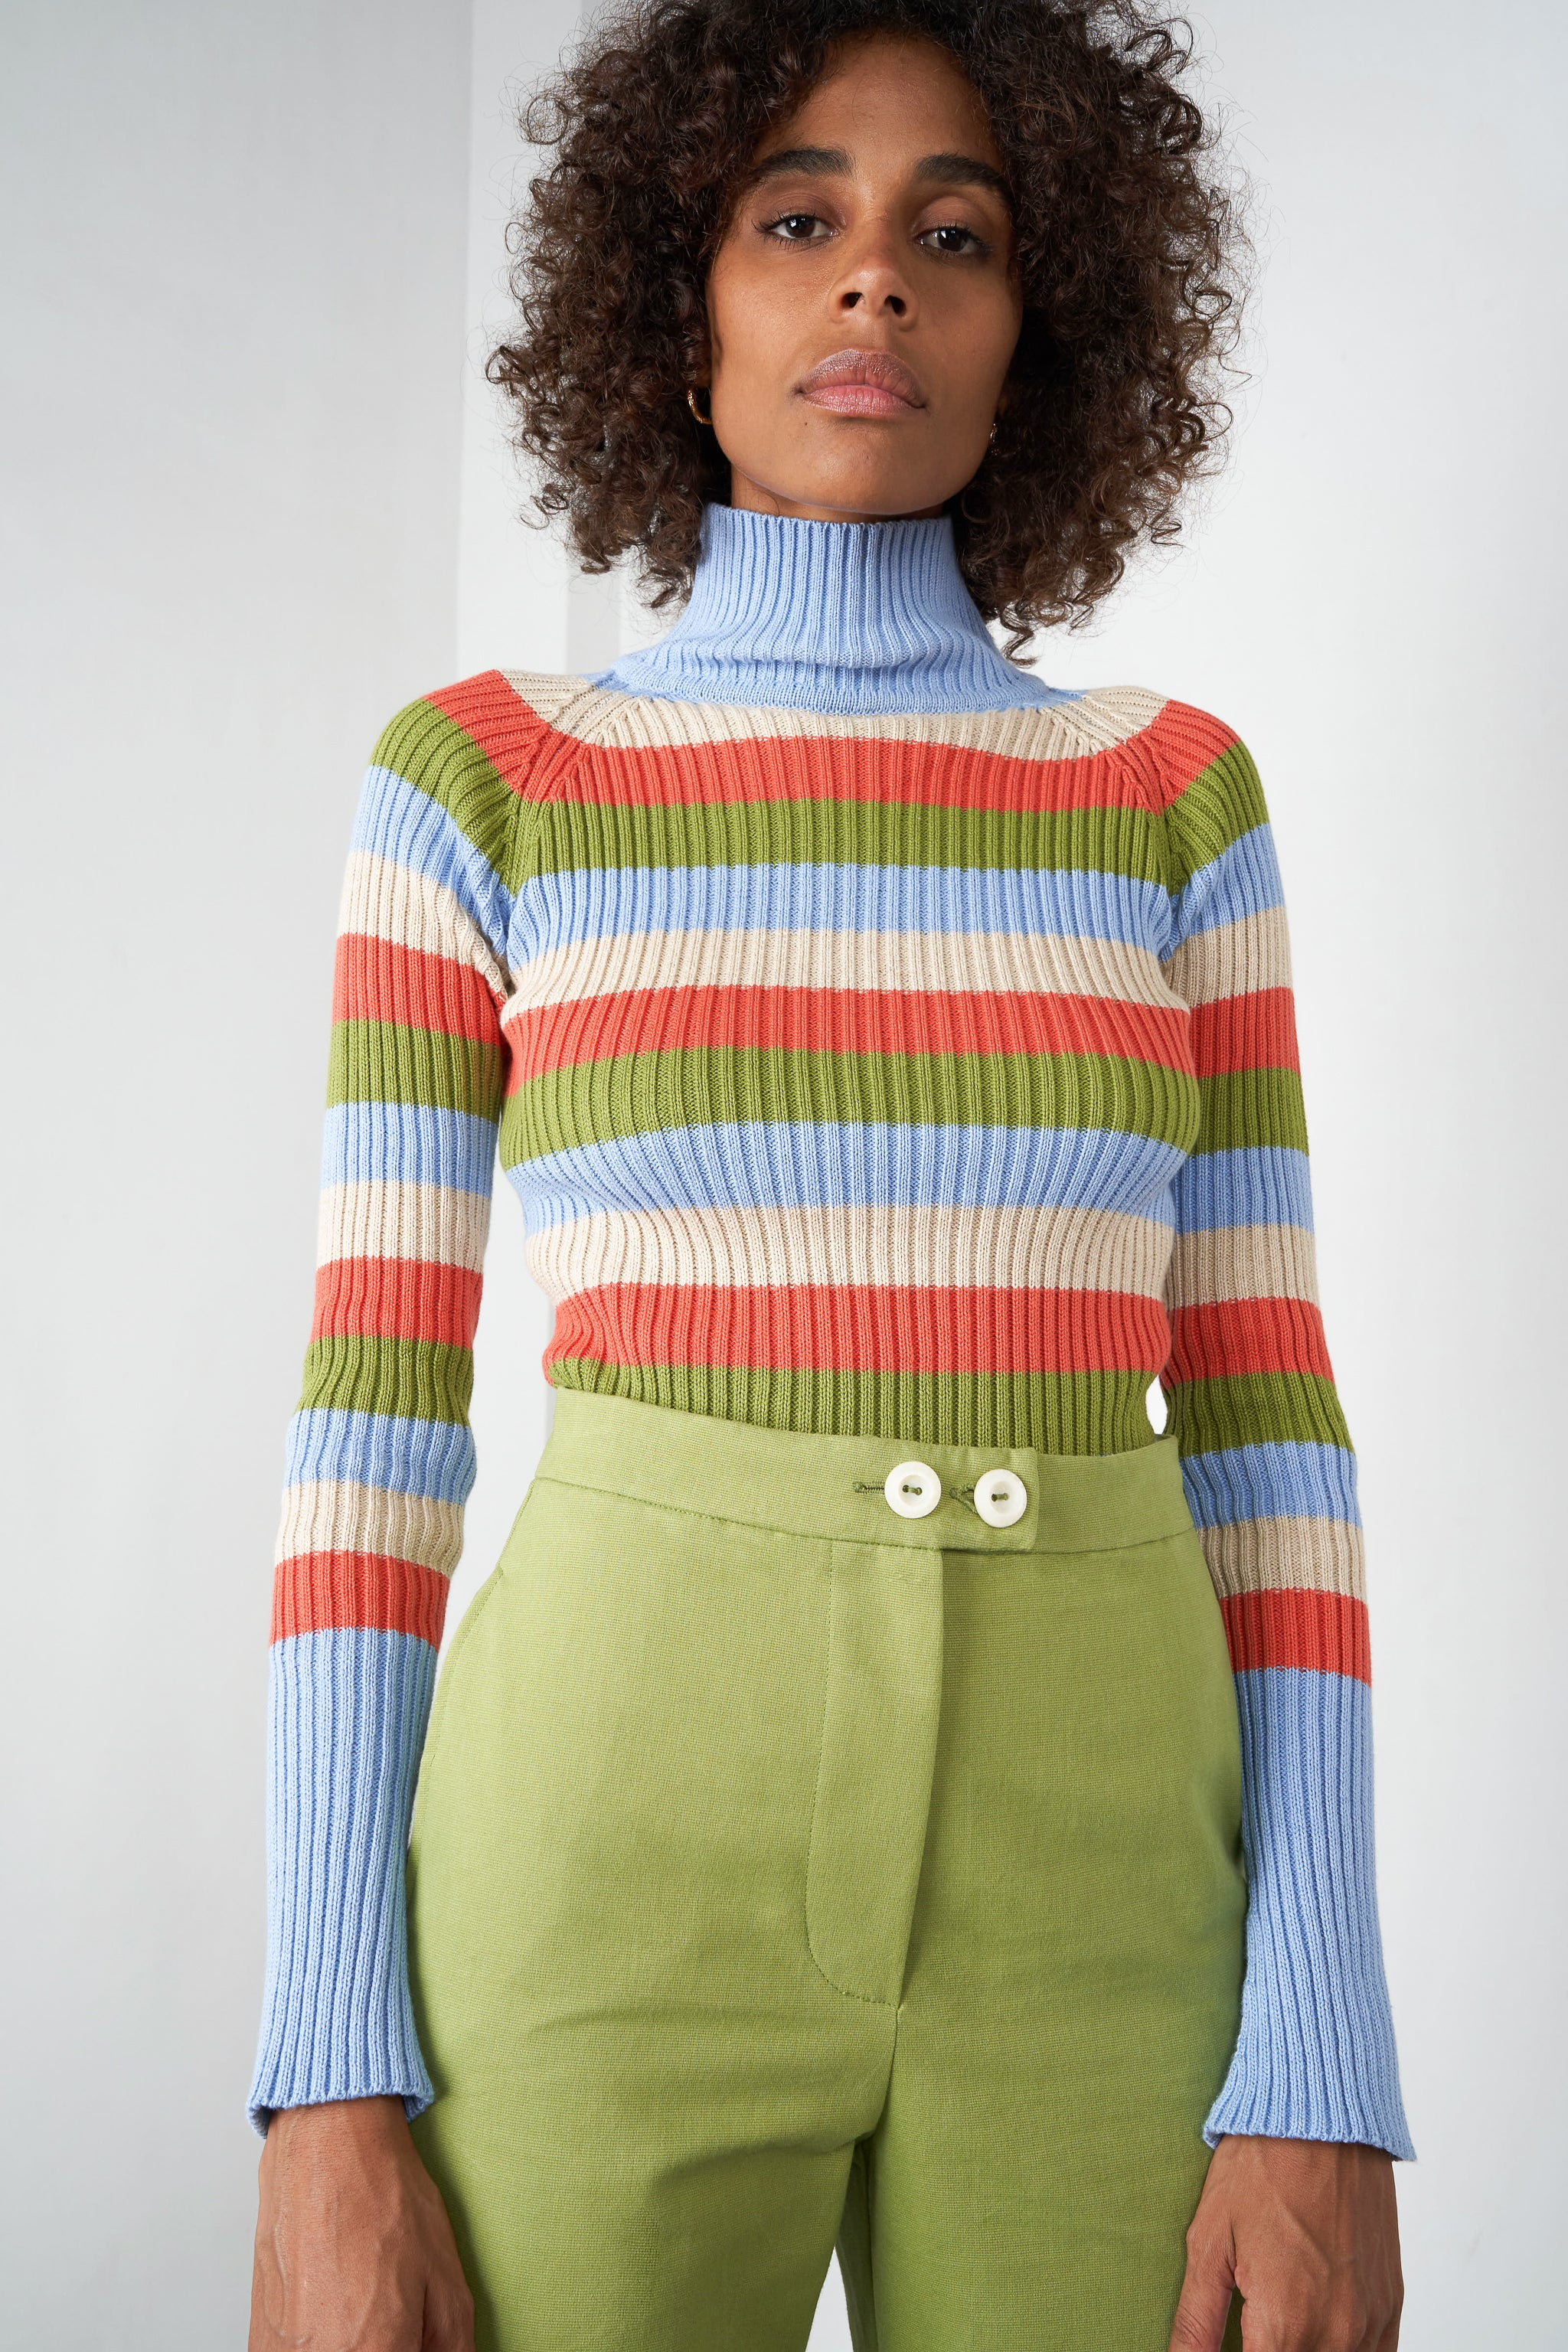 Arthur Apparel AW20 Womenswear Australian Fashion Ribbed Turtleneck Top Stripy Multicoloured